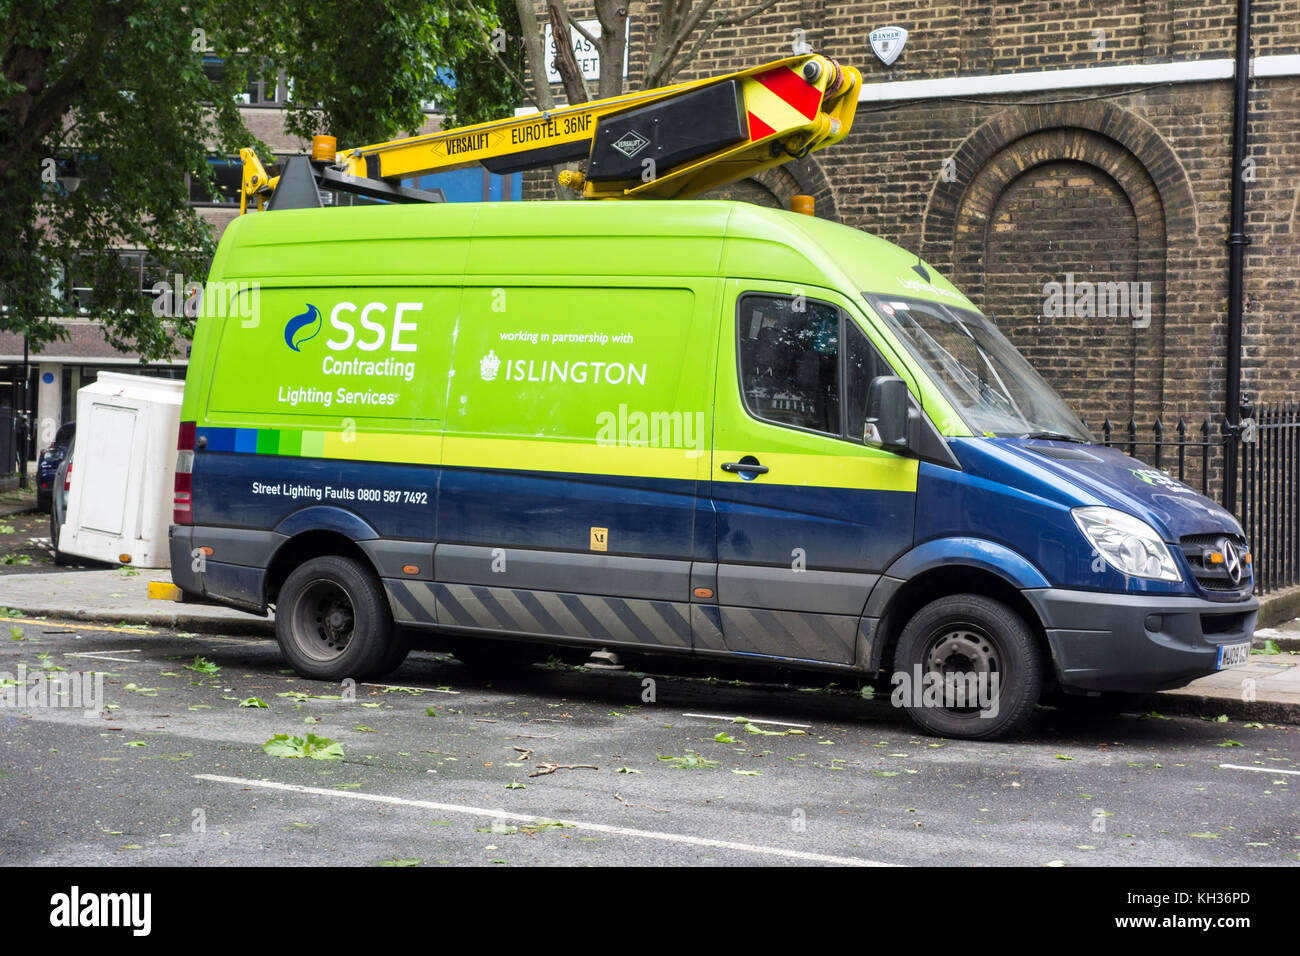 SSE Lighting Services in Islington on a windy day with leaves on the ground, London, UK - Stock Image